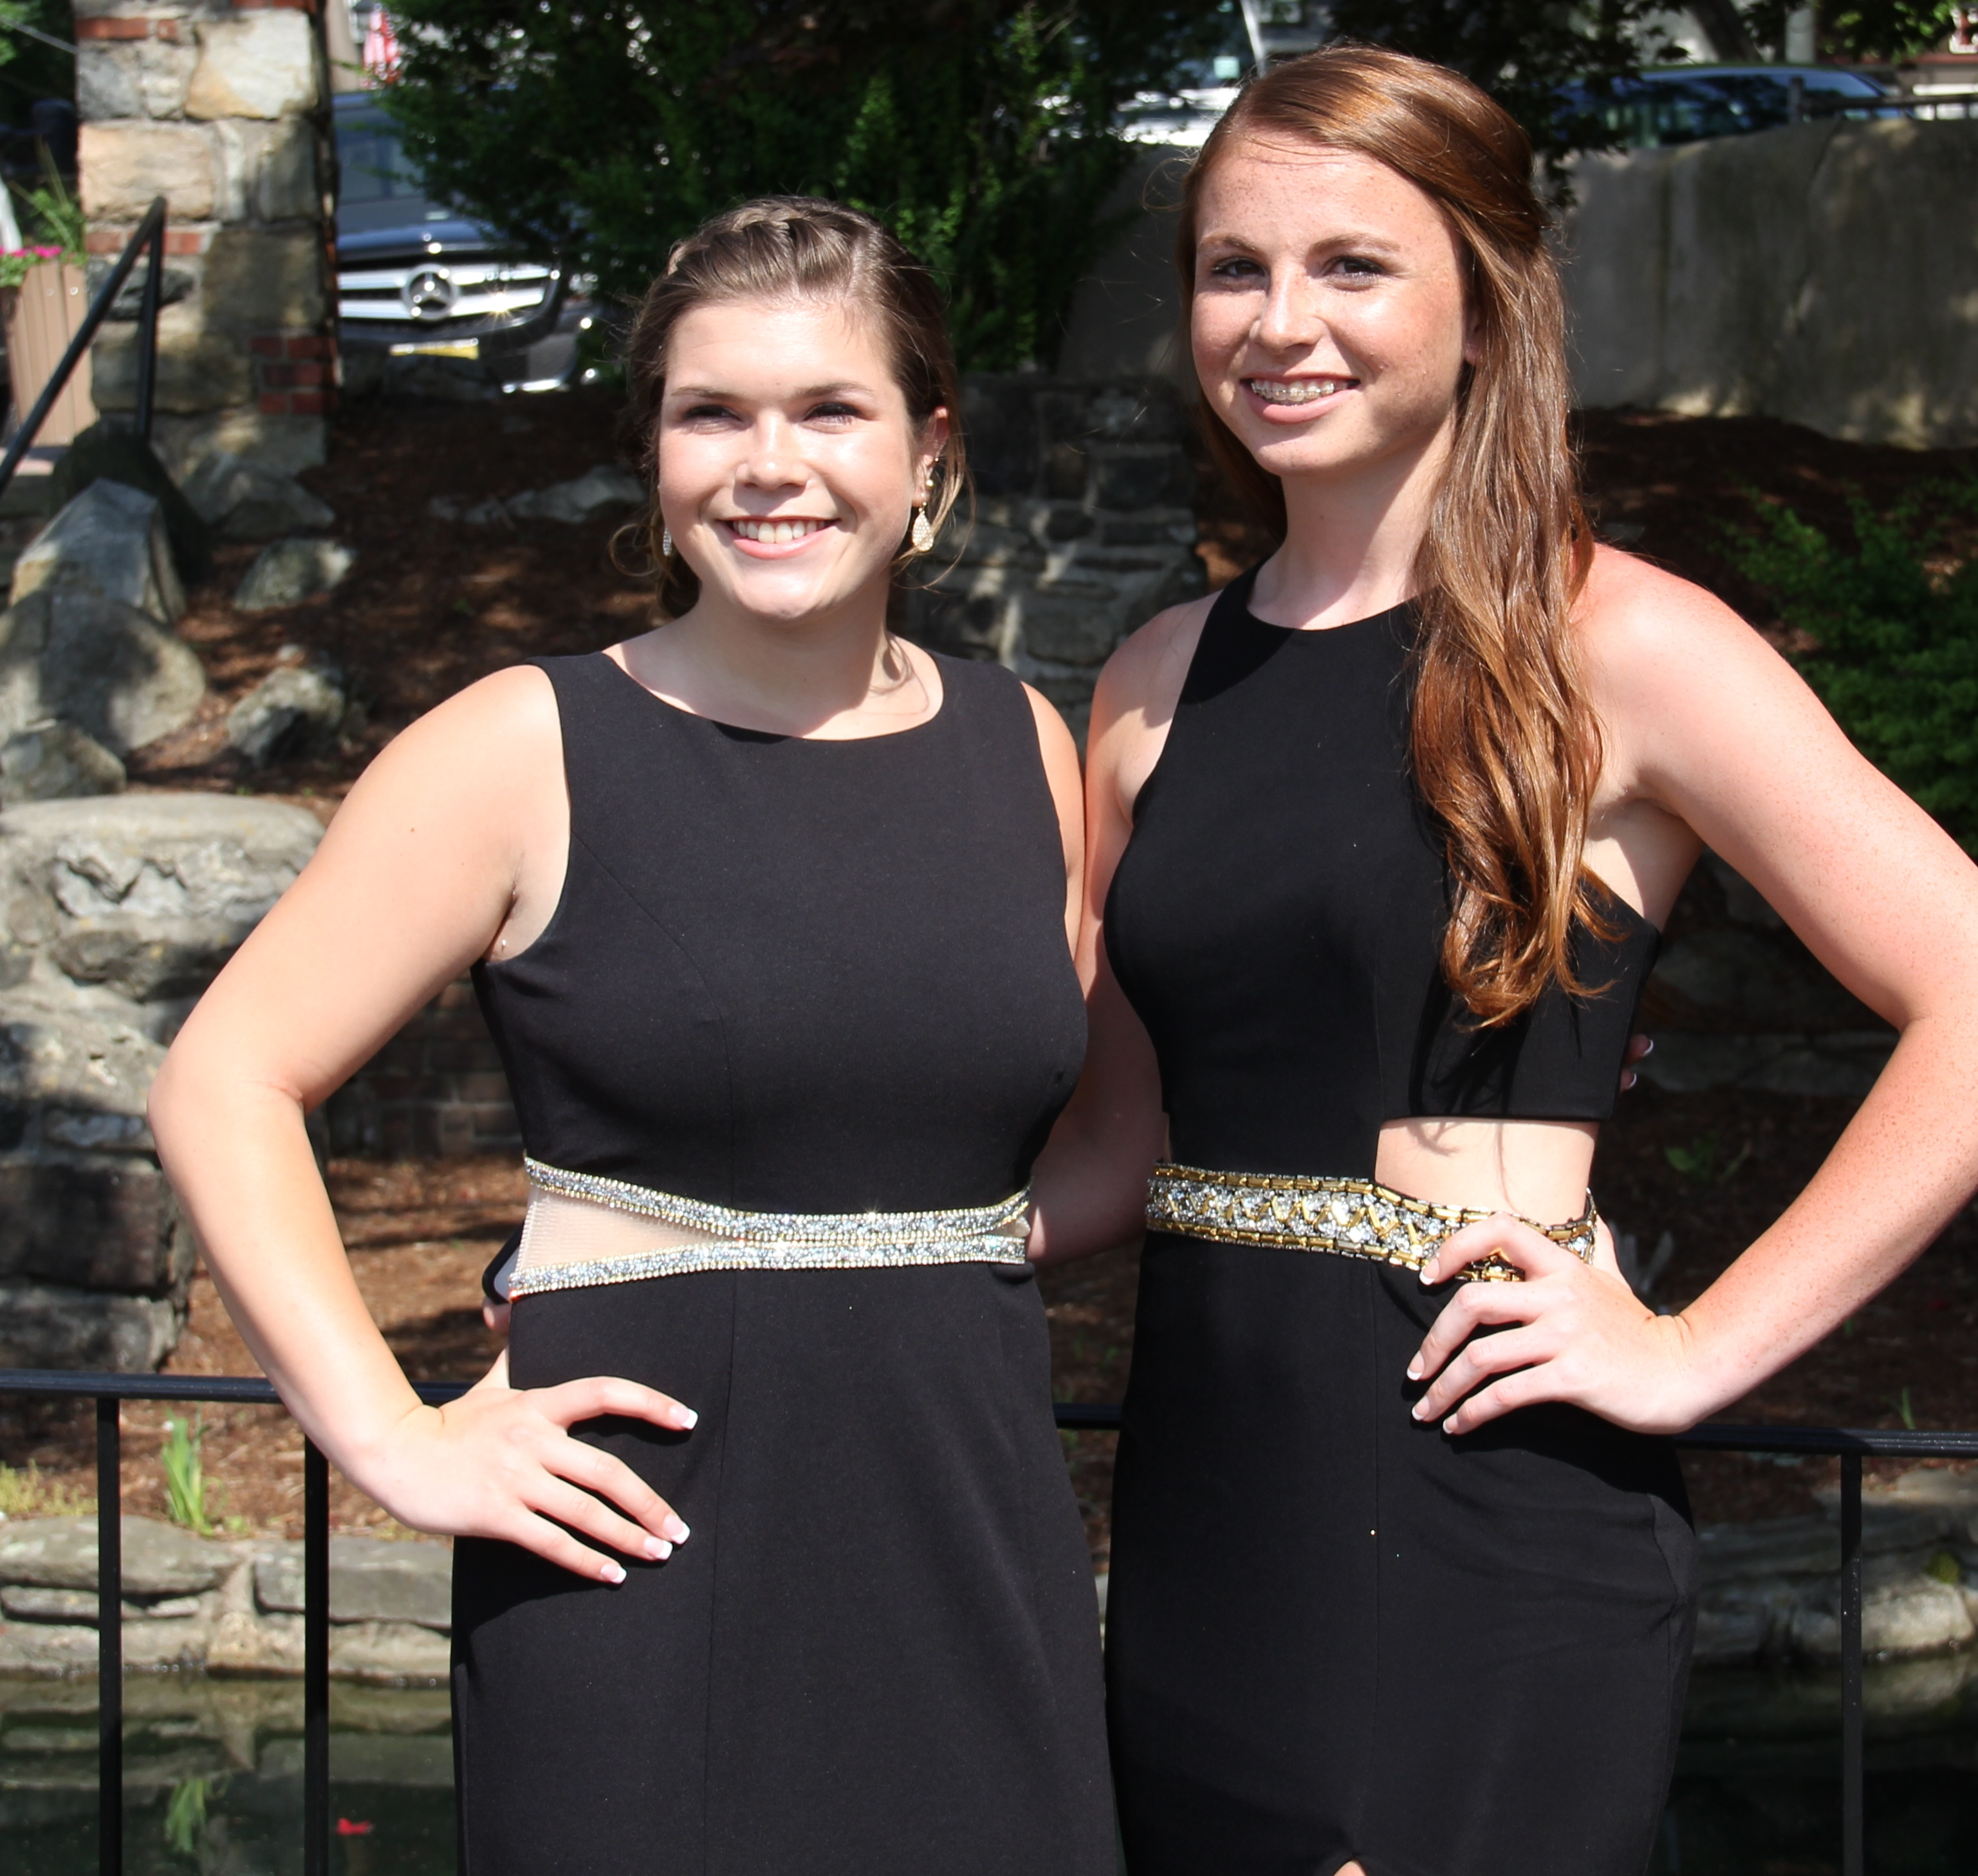 Dress up 247 login - Updated With New Photos Sparta High School Students Dress Up For Prom Sparta Nj News Tapinto